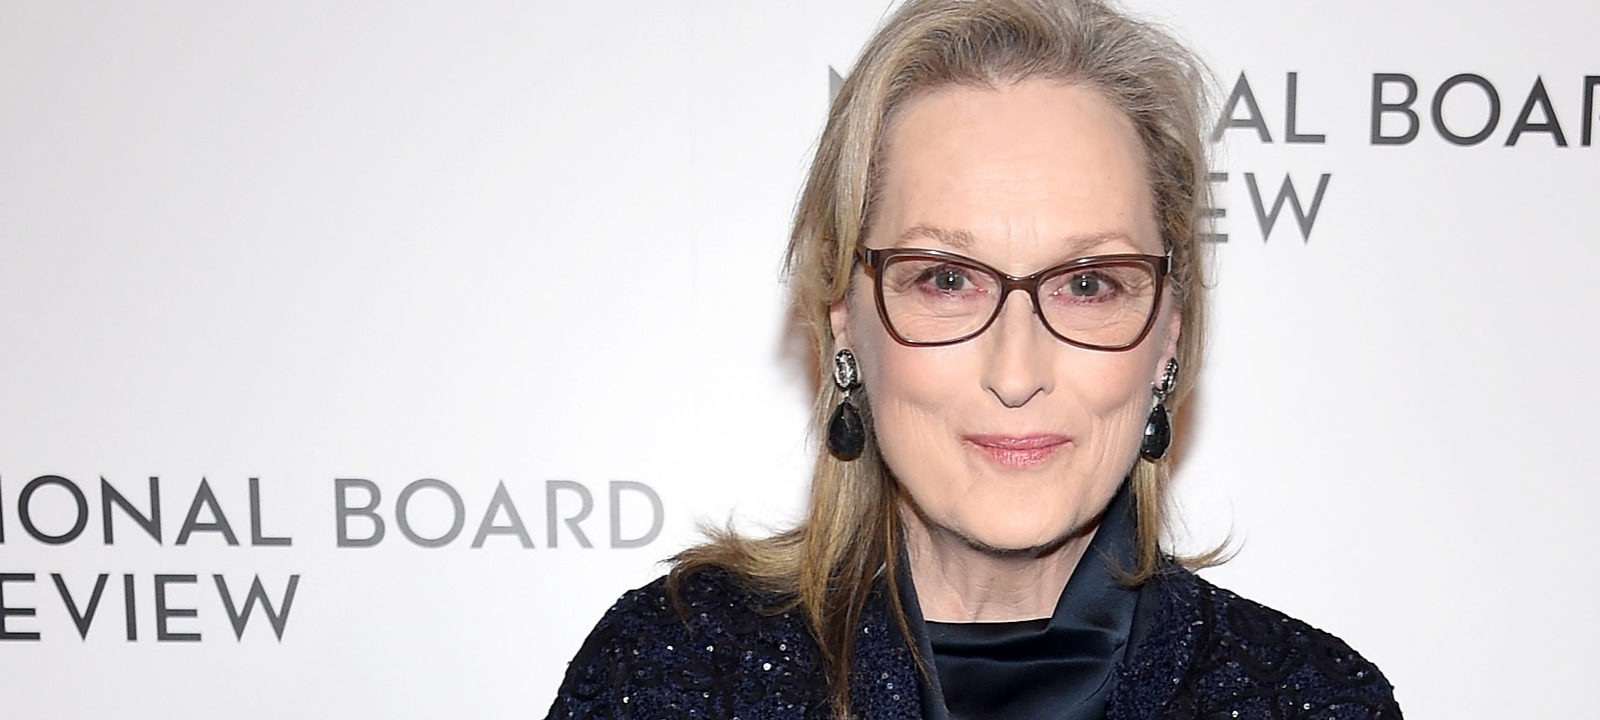 Actor Meryl Streep attends the National Board of Review Annual Awards Gala at Cipriani 42nd Street on January 9, 2018 in New York City.